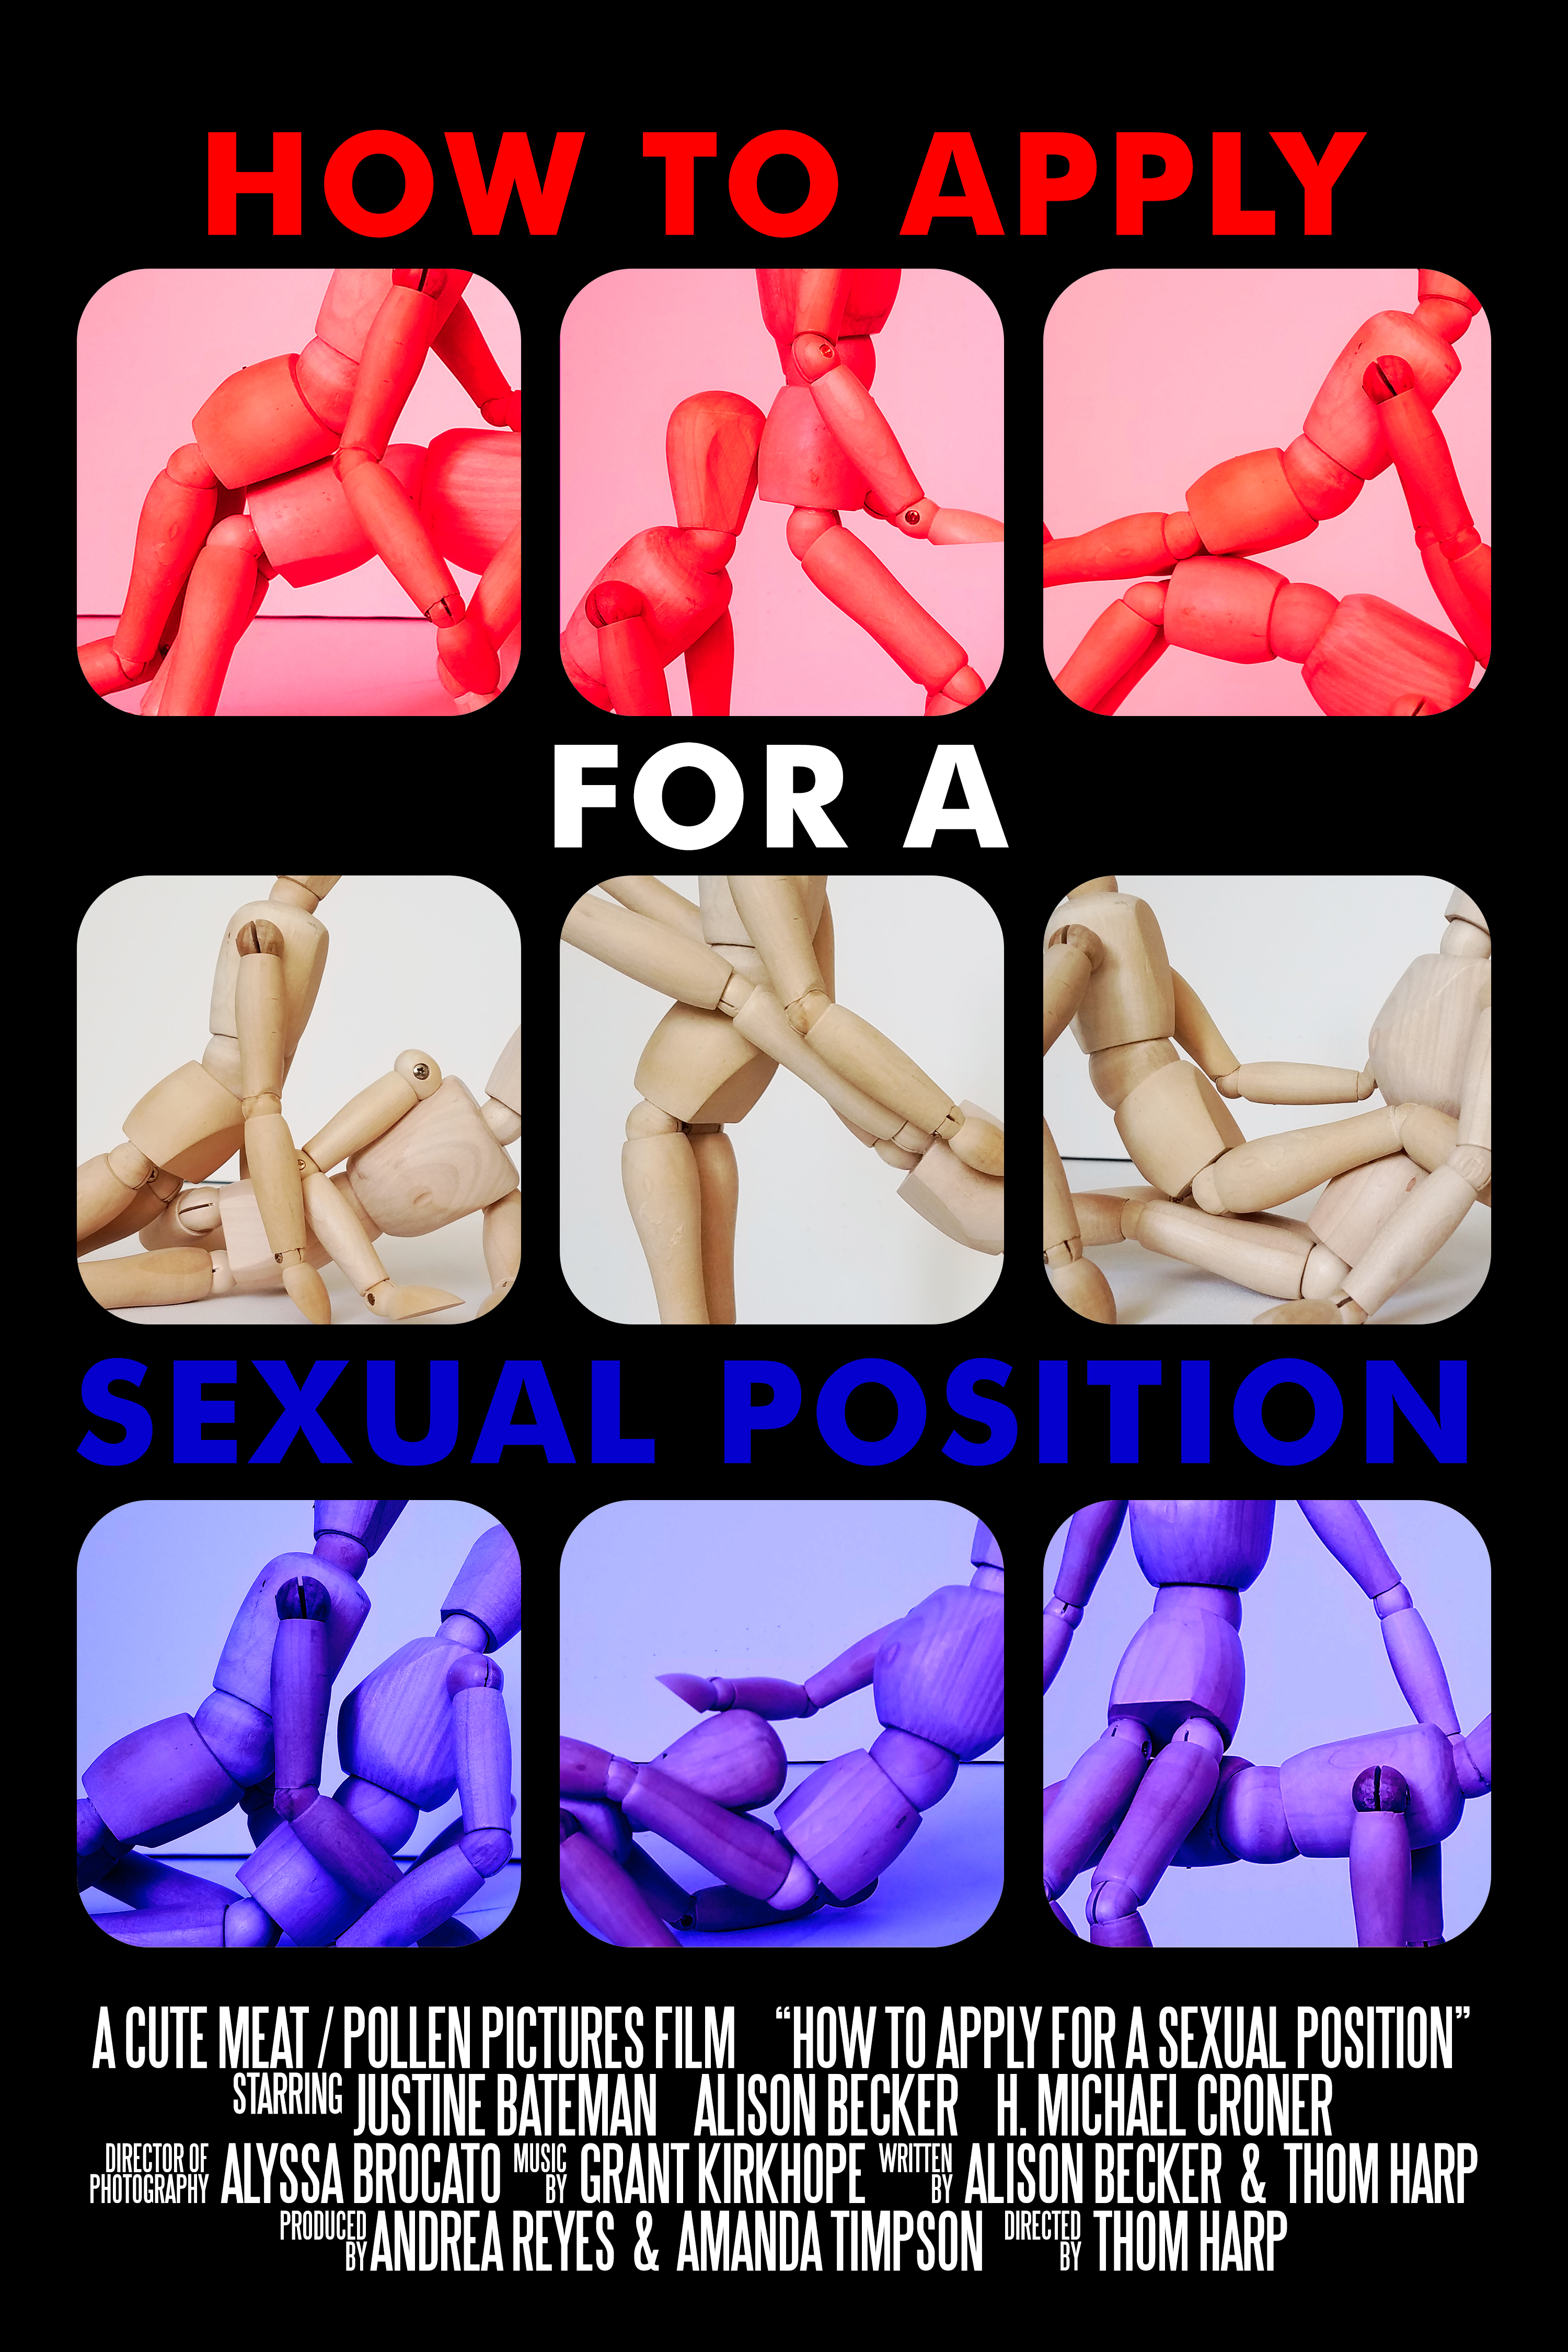 Position for sexuality